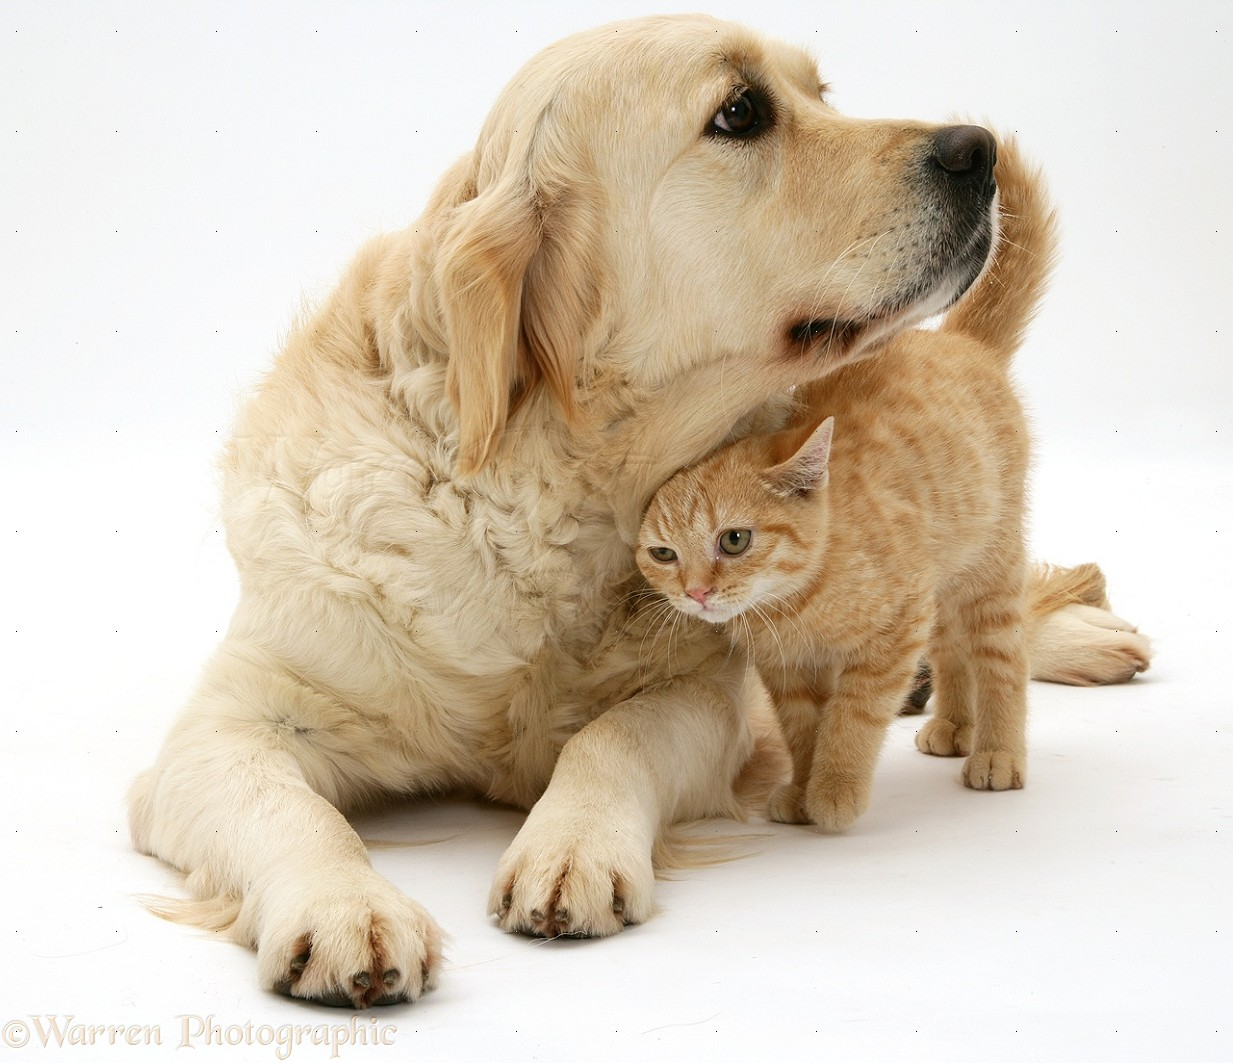 Vday Dog And Cat Pics